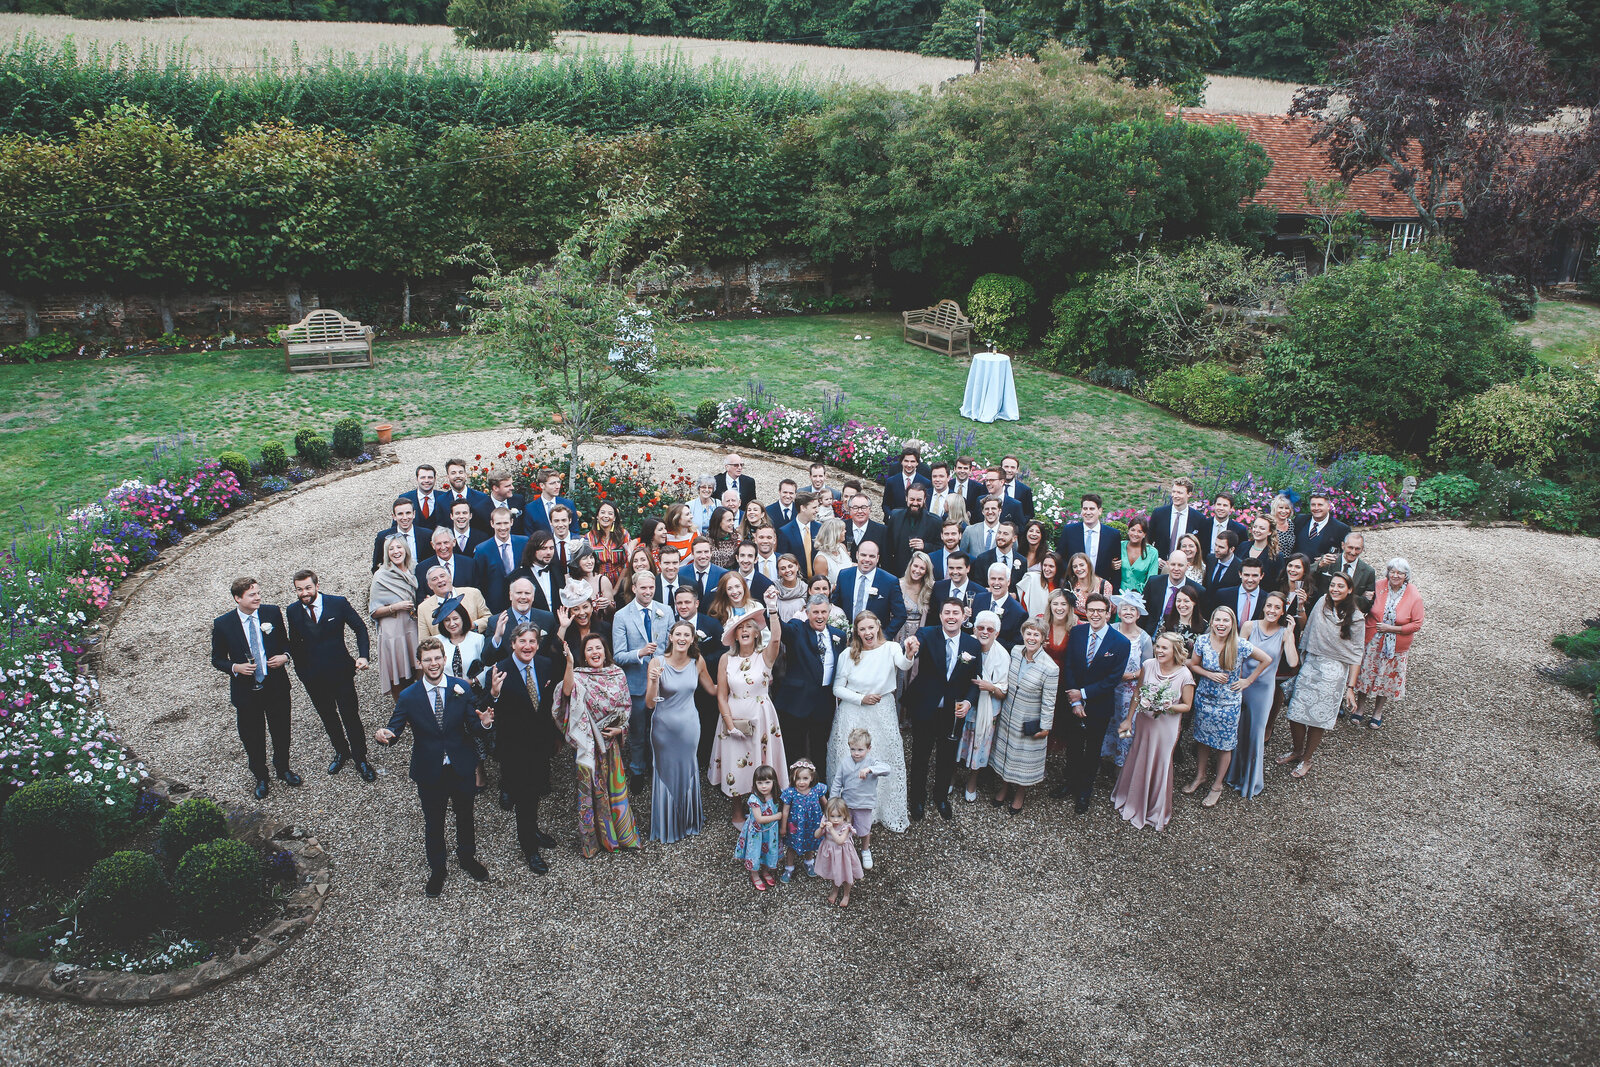 WP-GARDEN-WEDDING-BIG-GROUP-SHOT_0030